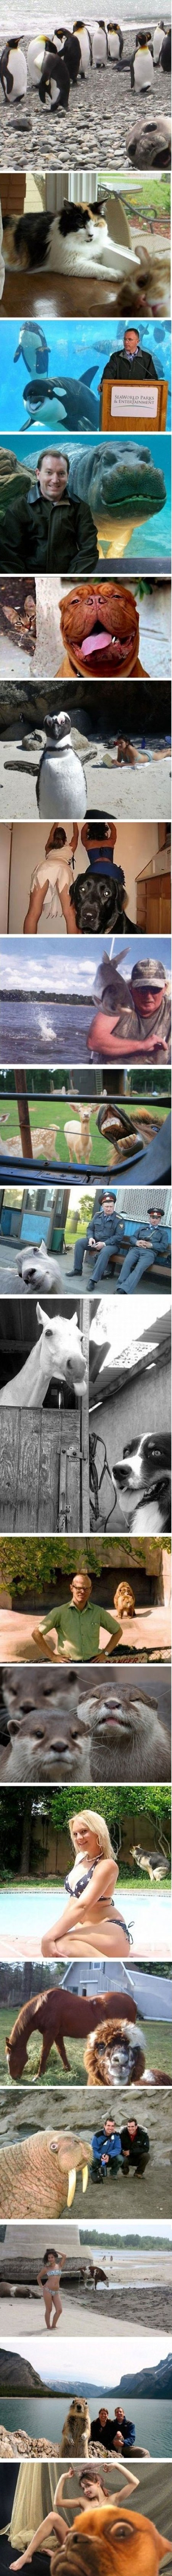 Photobombing Animals